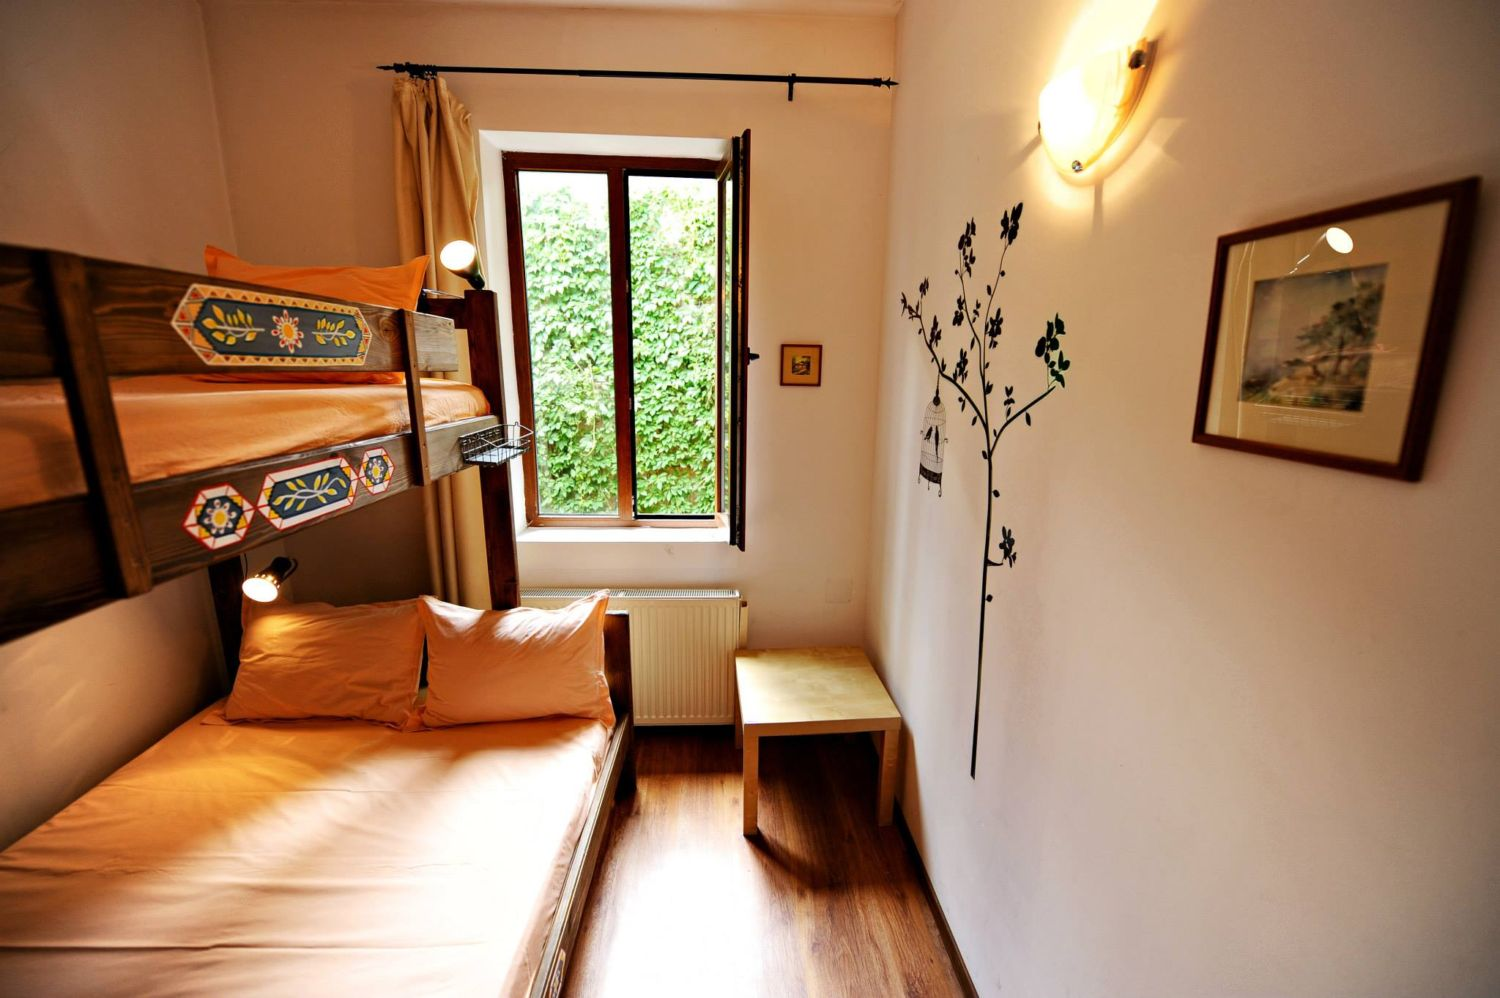 Hostel recommendations in Bucharest